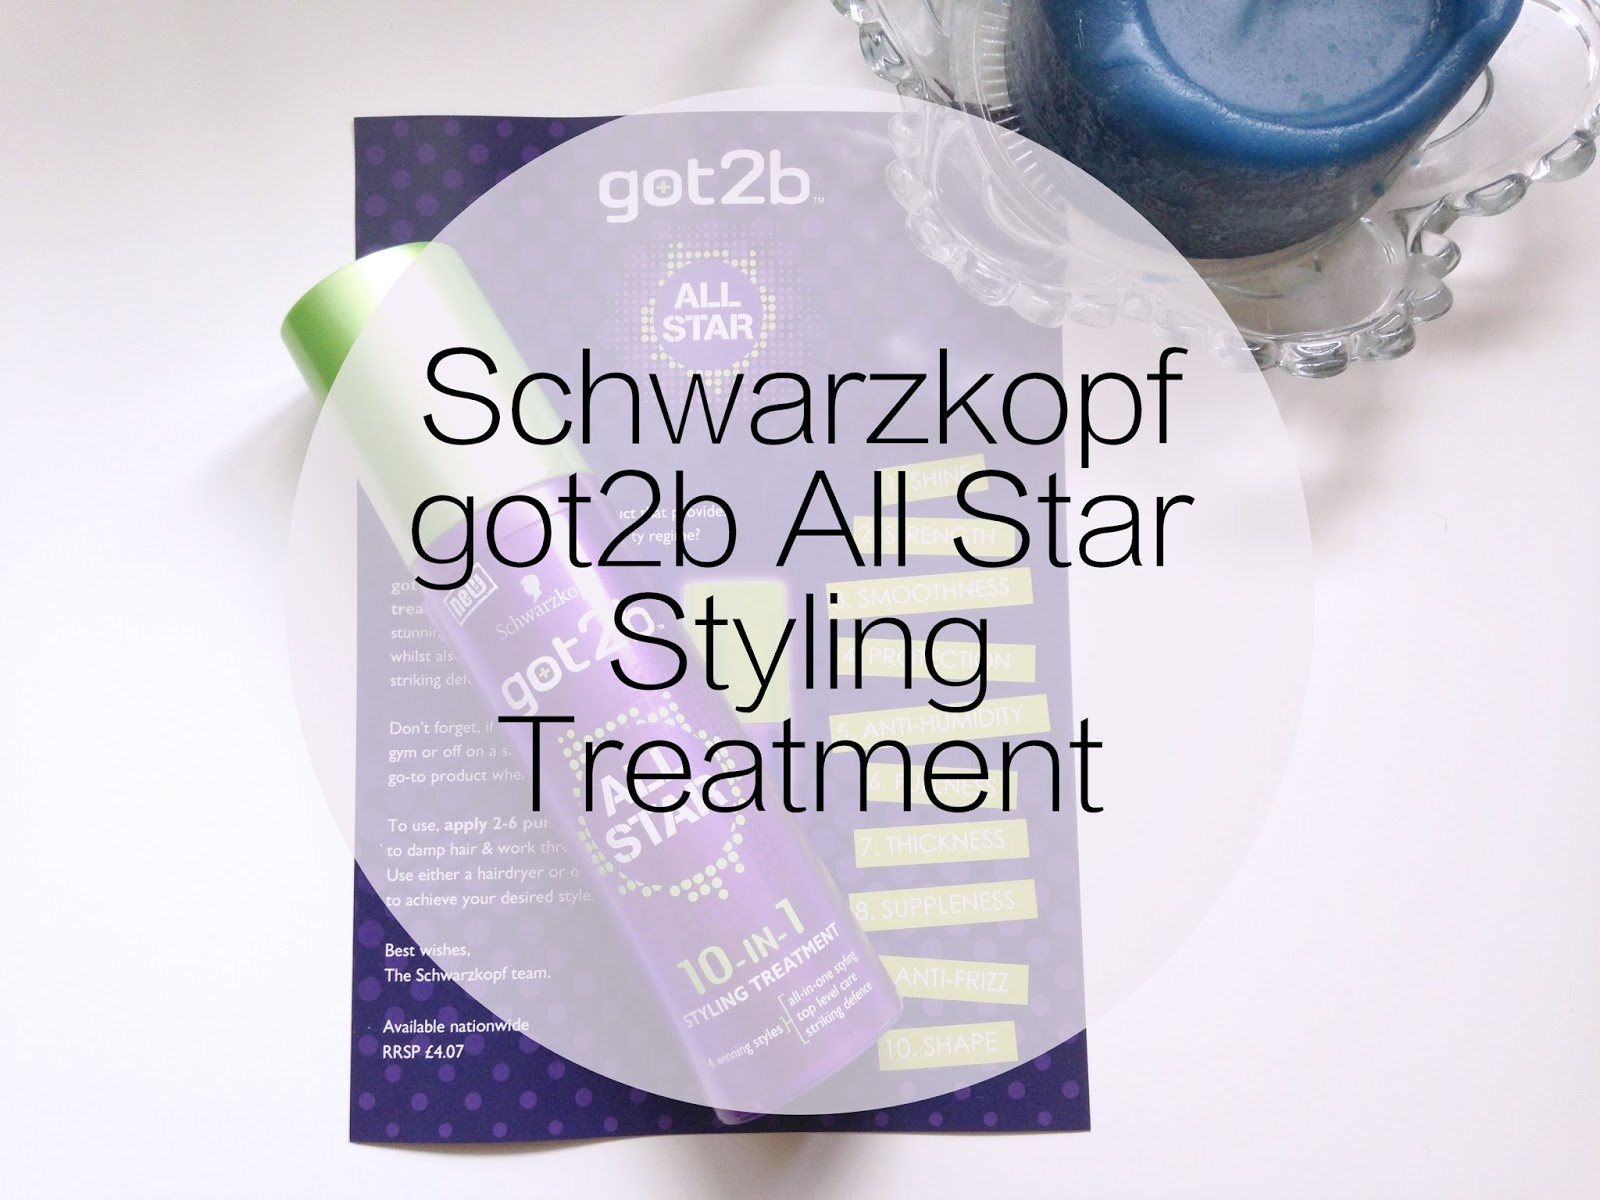 Schwarzkopf got2b All Star Styling Treatment